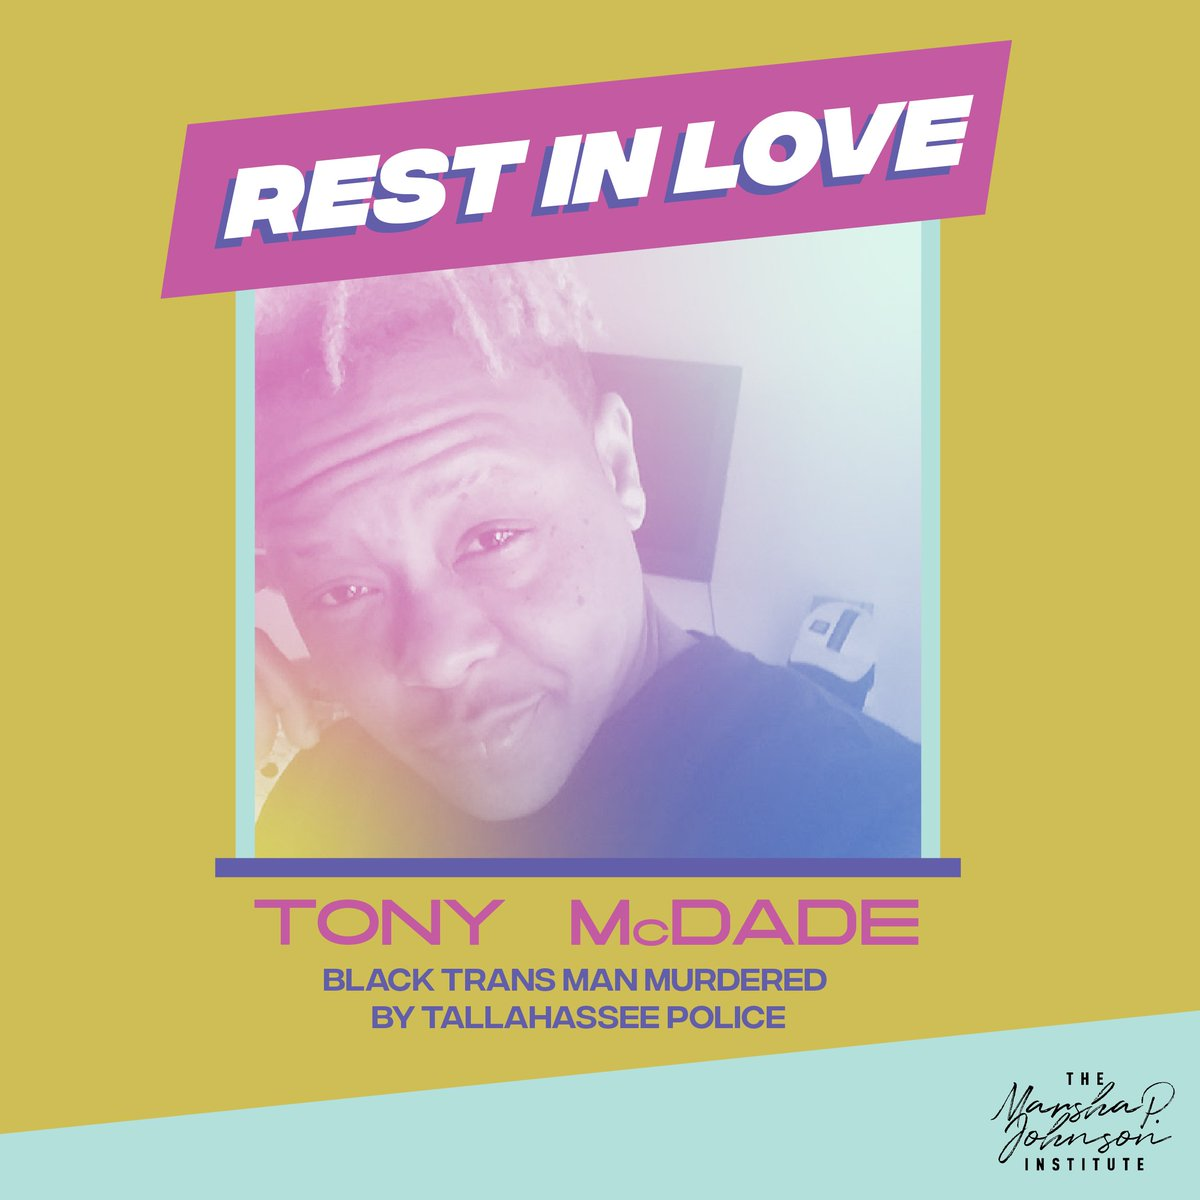 #RestInLOVE to Tony McDade, a Black trans man who was recently murdered by the police in Tallahassee, Florida. Black trans people are seldom ever included in the larger discussion of police brutality, but we here at MPJI will honor his name and correctly gender him #ICantBreathe